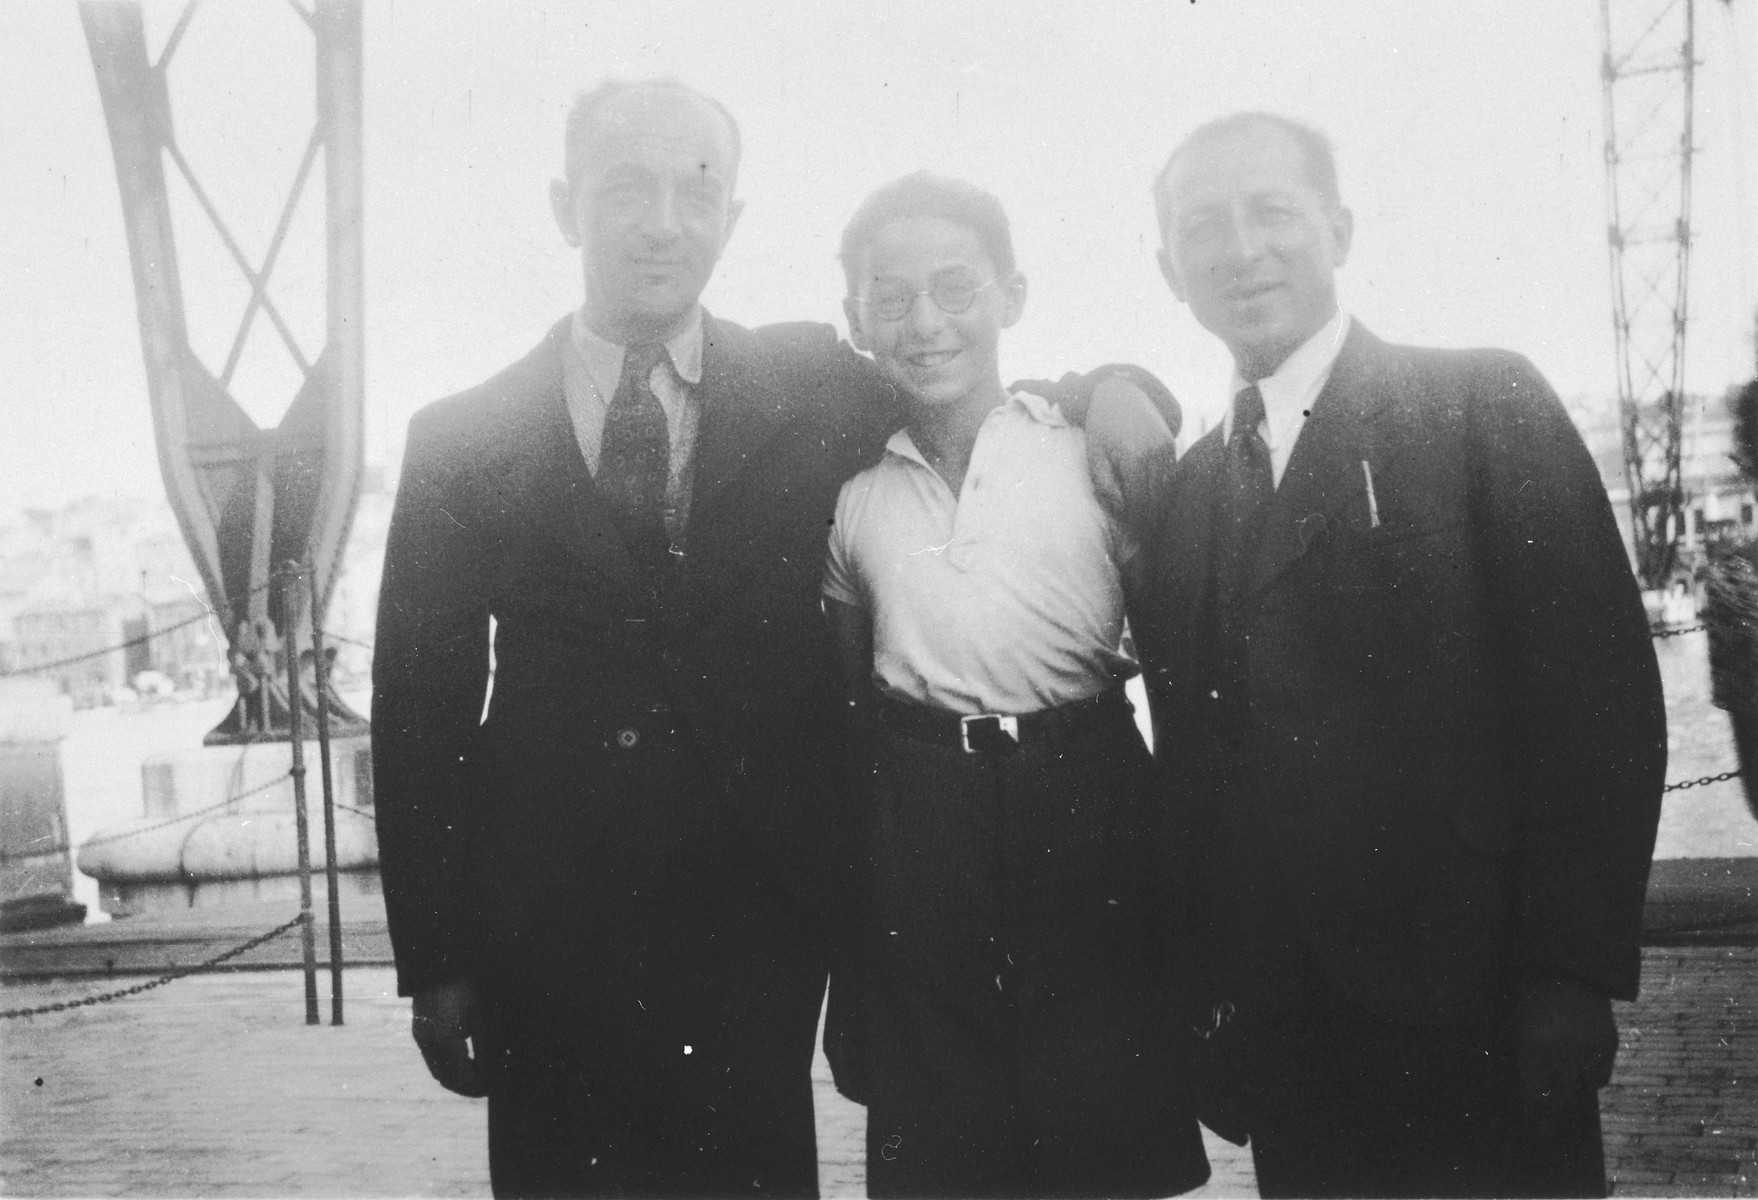 During a temporary leave from the Les Milles internment camp, Baruch Brenig (right) poses with his son,Theo (center), and brother-in-law, Hermann Herzmann (left), at the Vieux Port in Marseilles.  Baruch was given a temporary leave from the Les Milles internment camp in order to arrange for the emigration of his family.